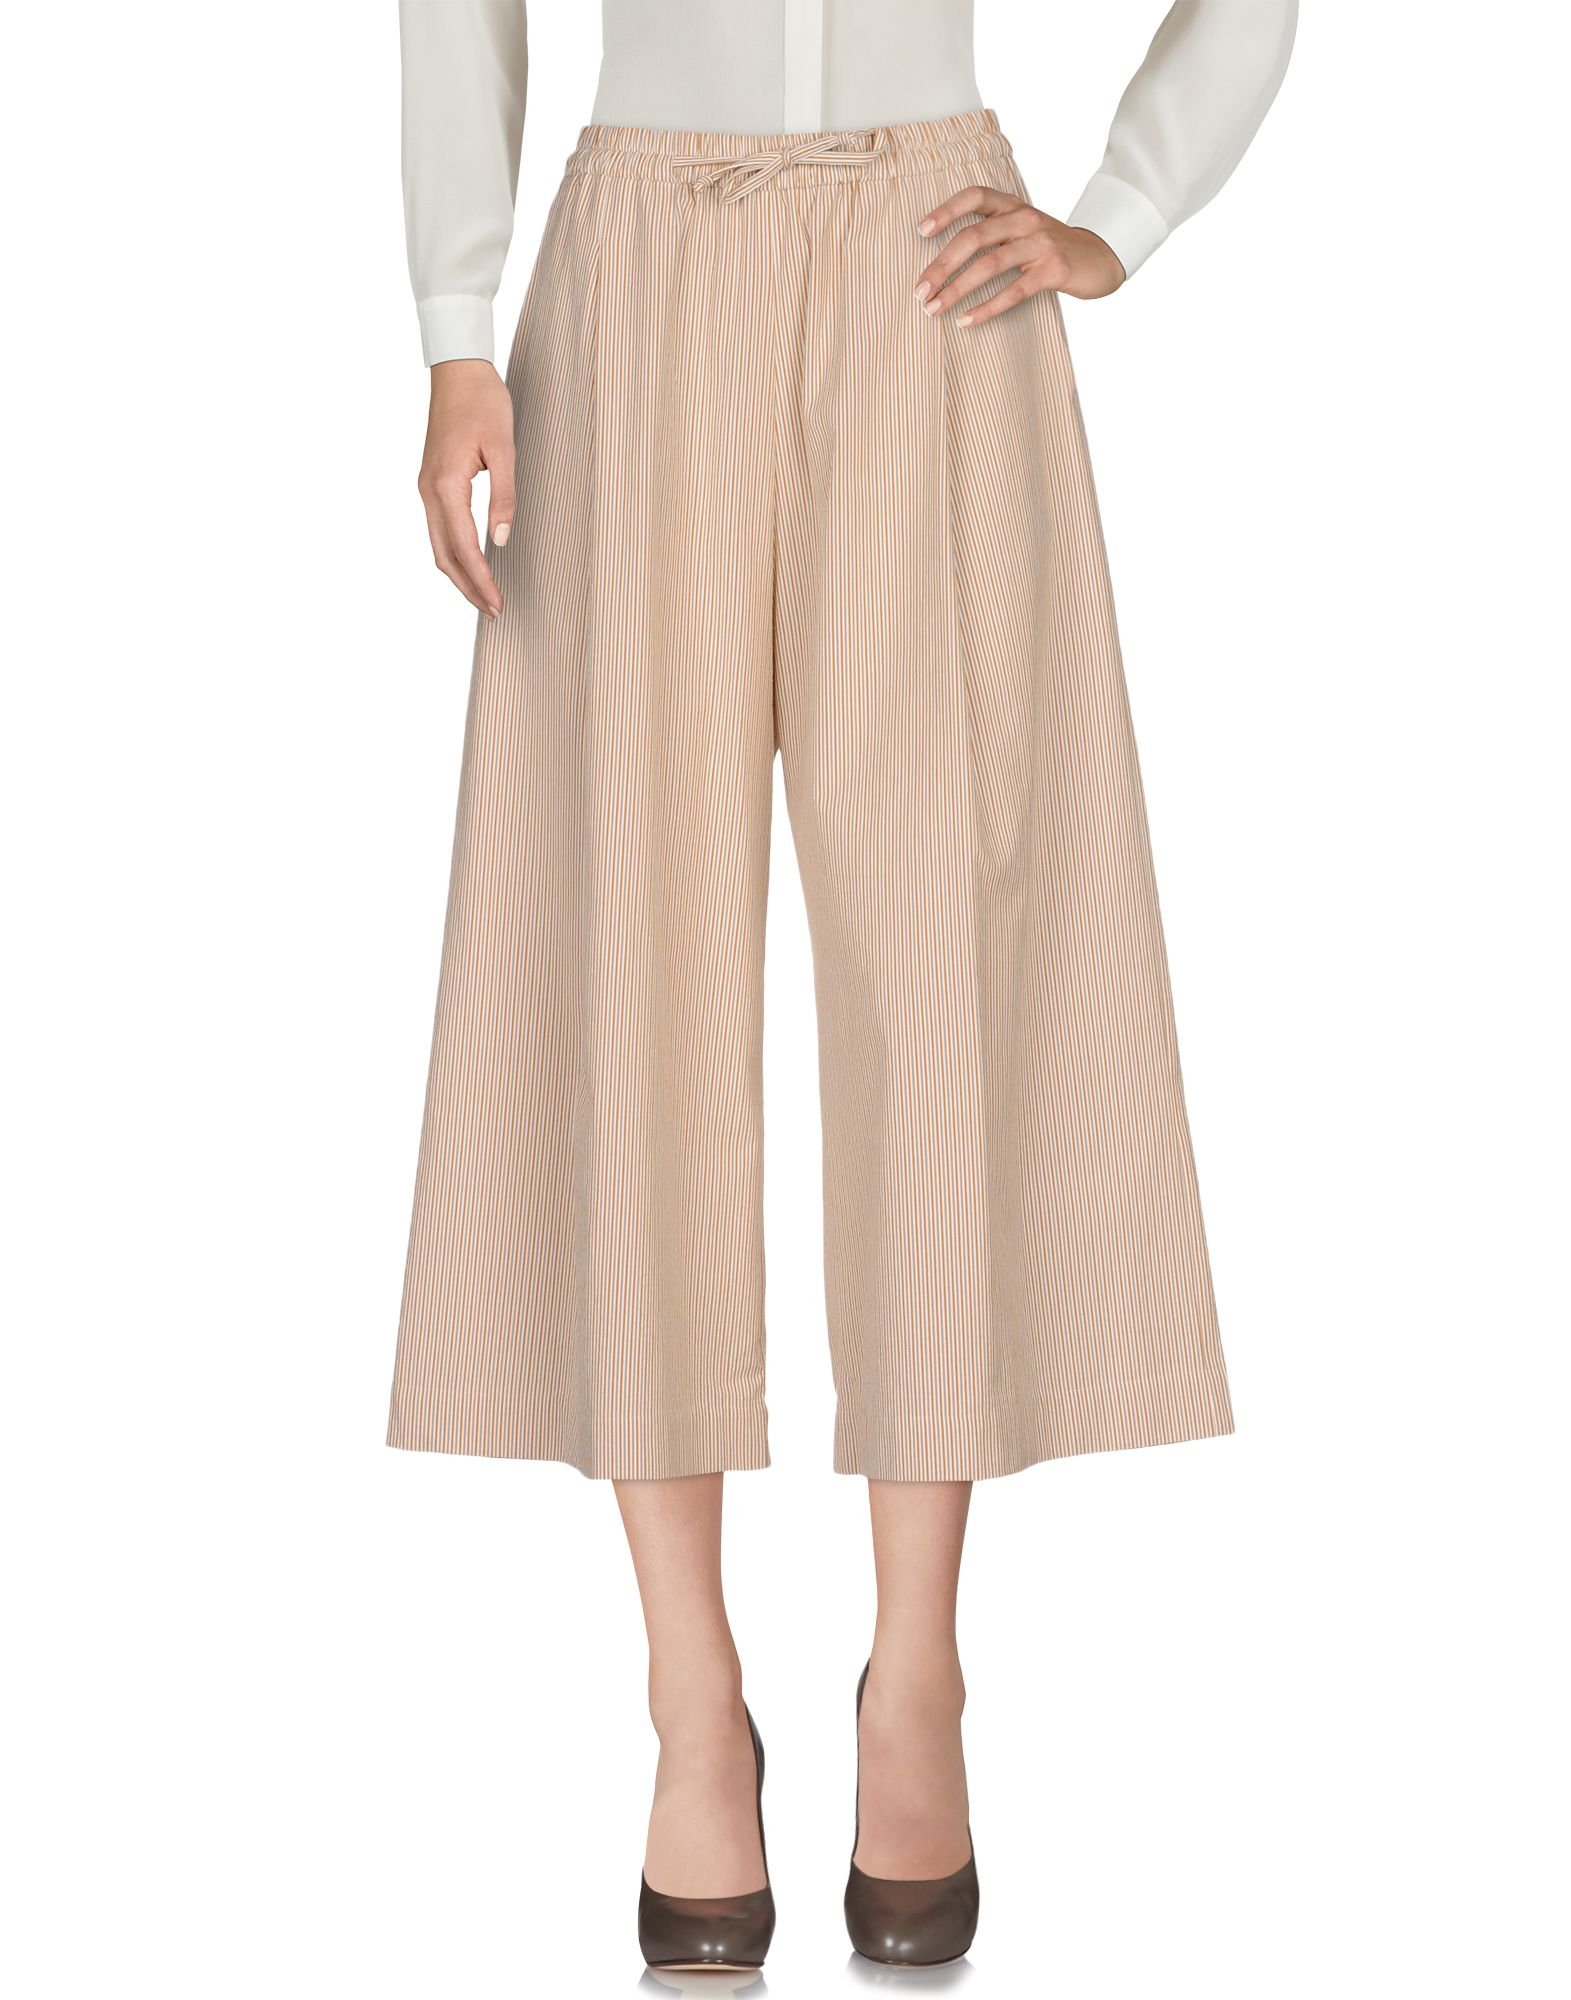 OPPORTUNO Casual Pants in Beige